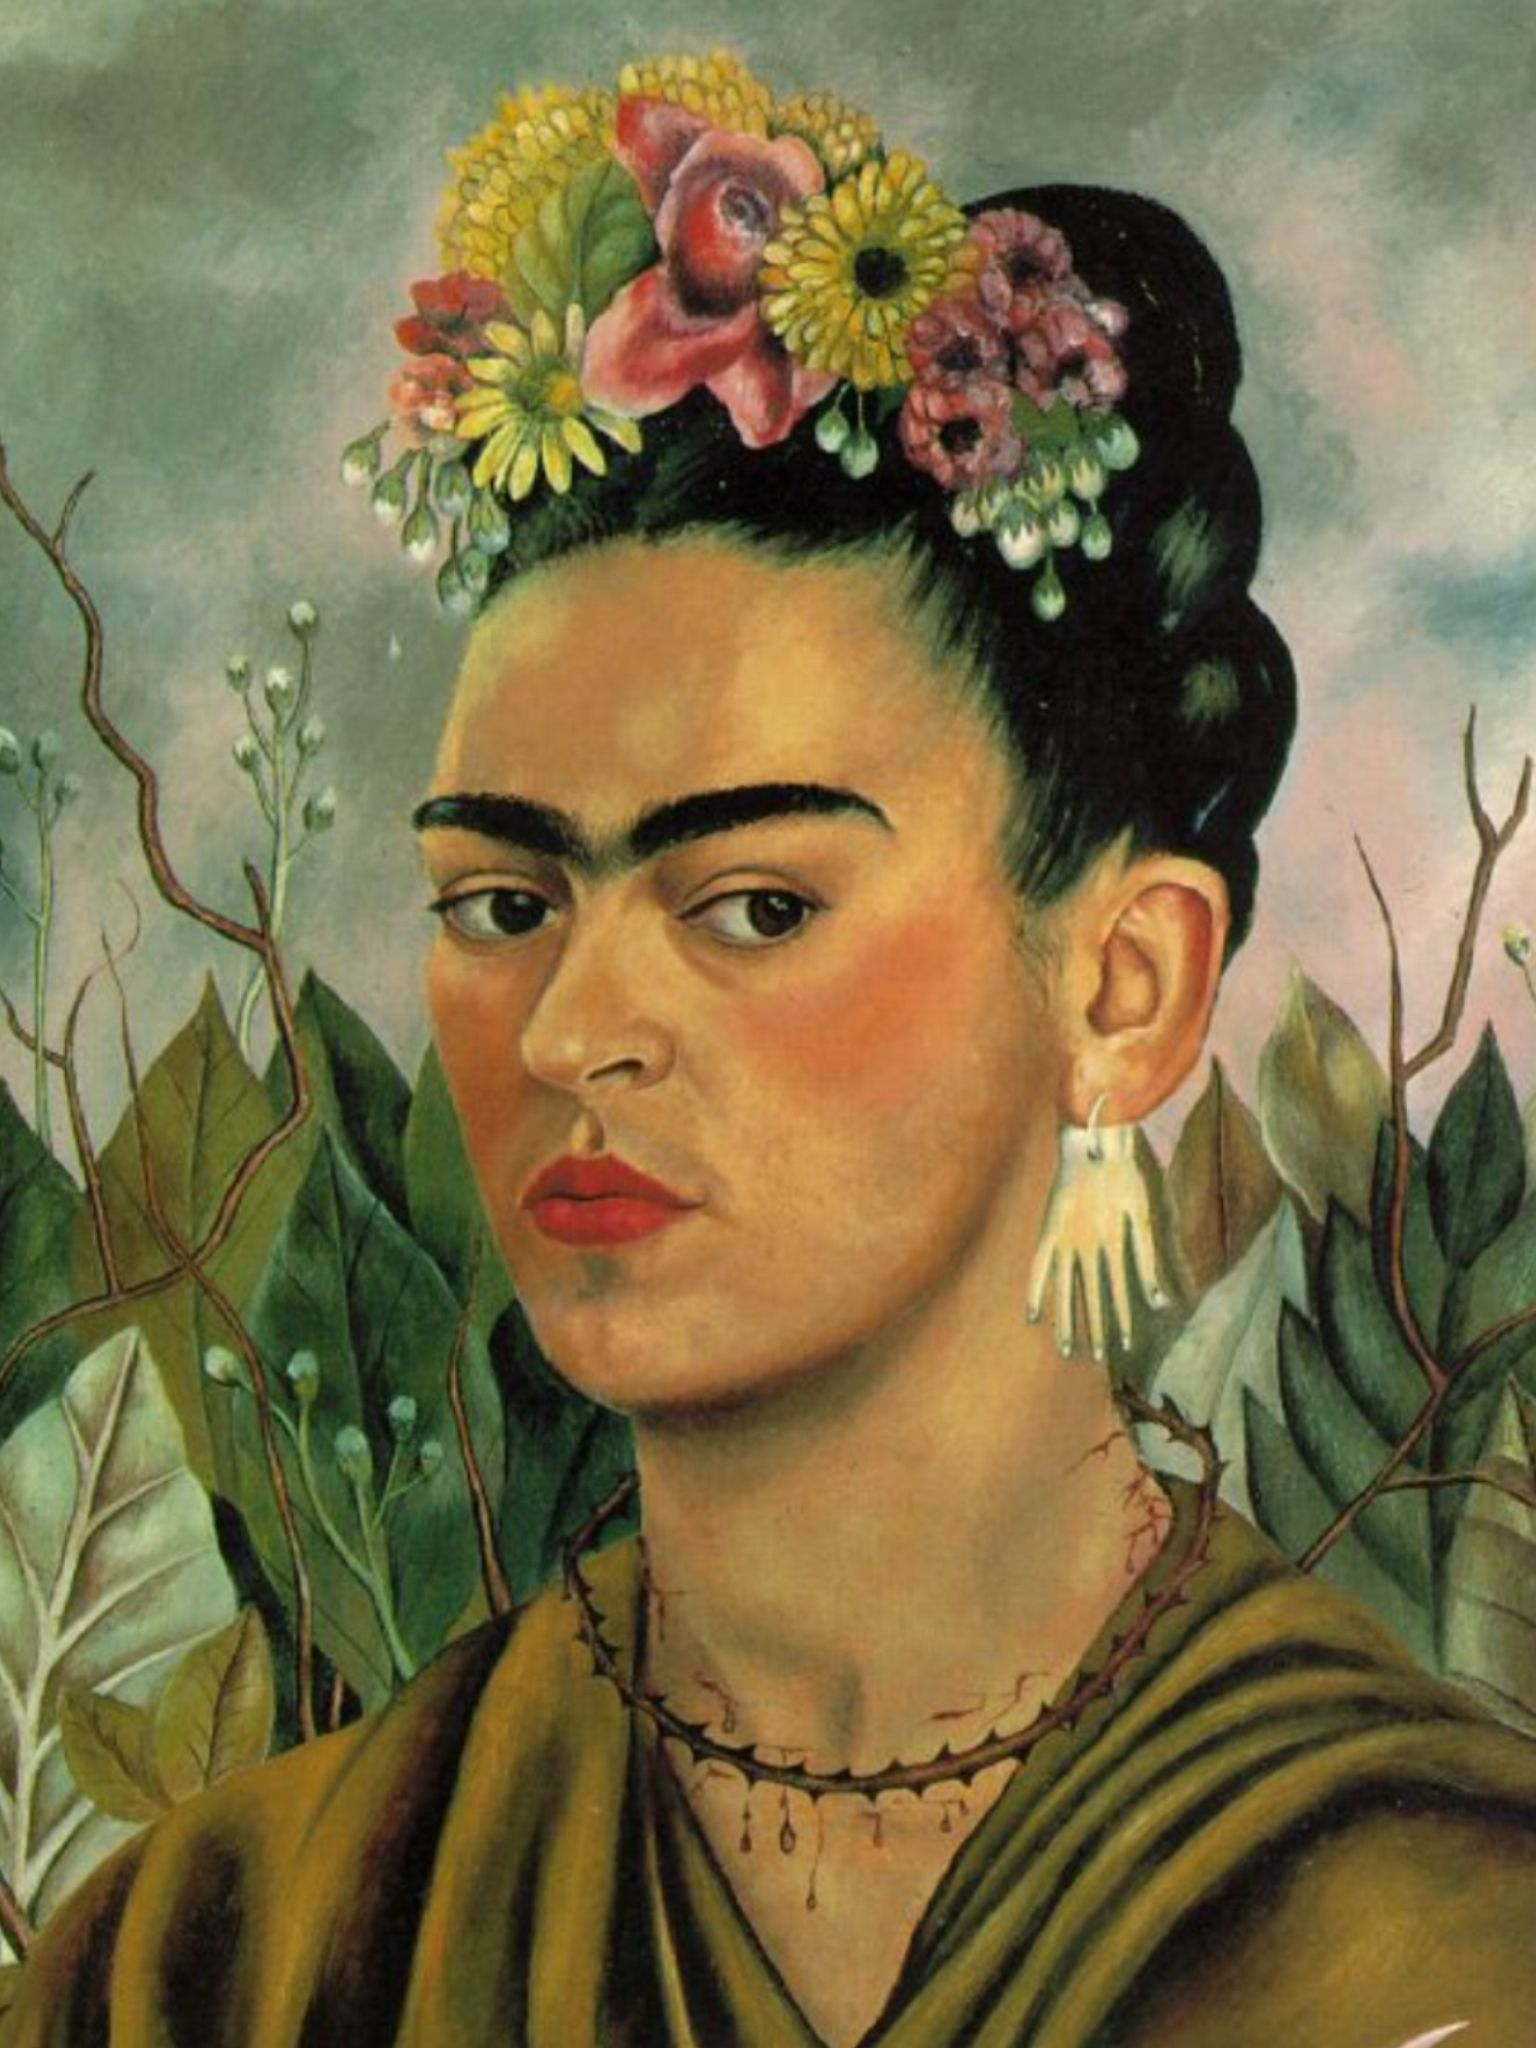 frida art painting culture mexican green pride. Black Bedroom Furniture Sets. Home Design Ideas